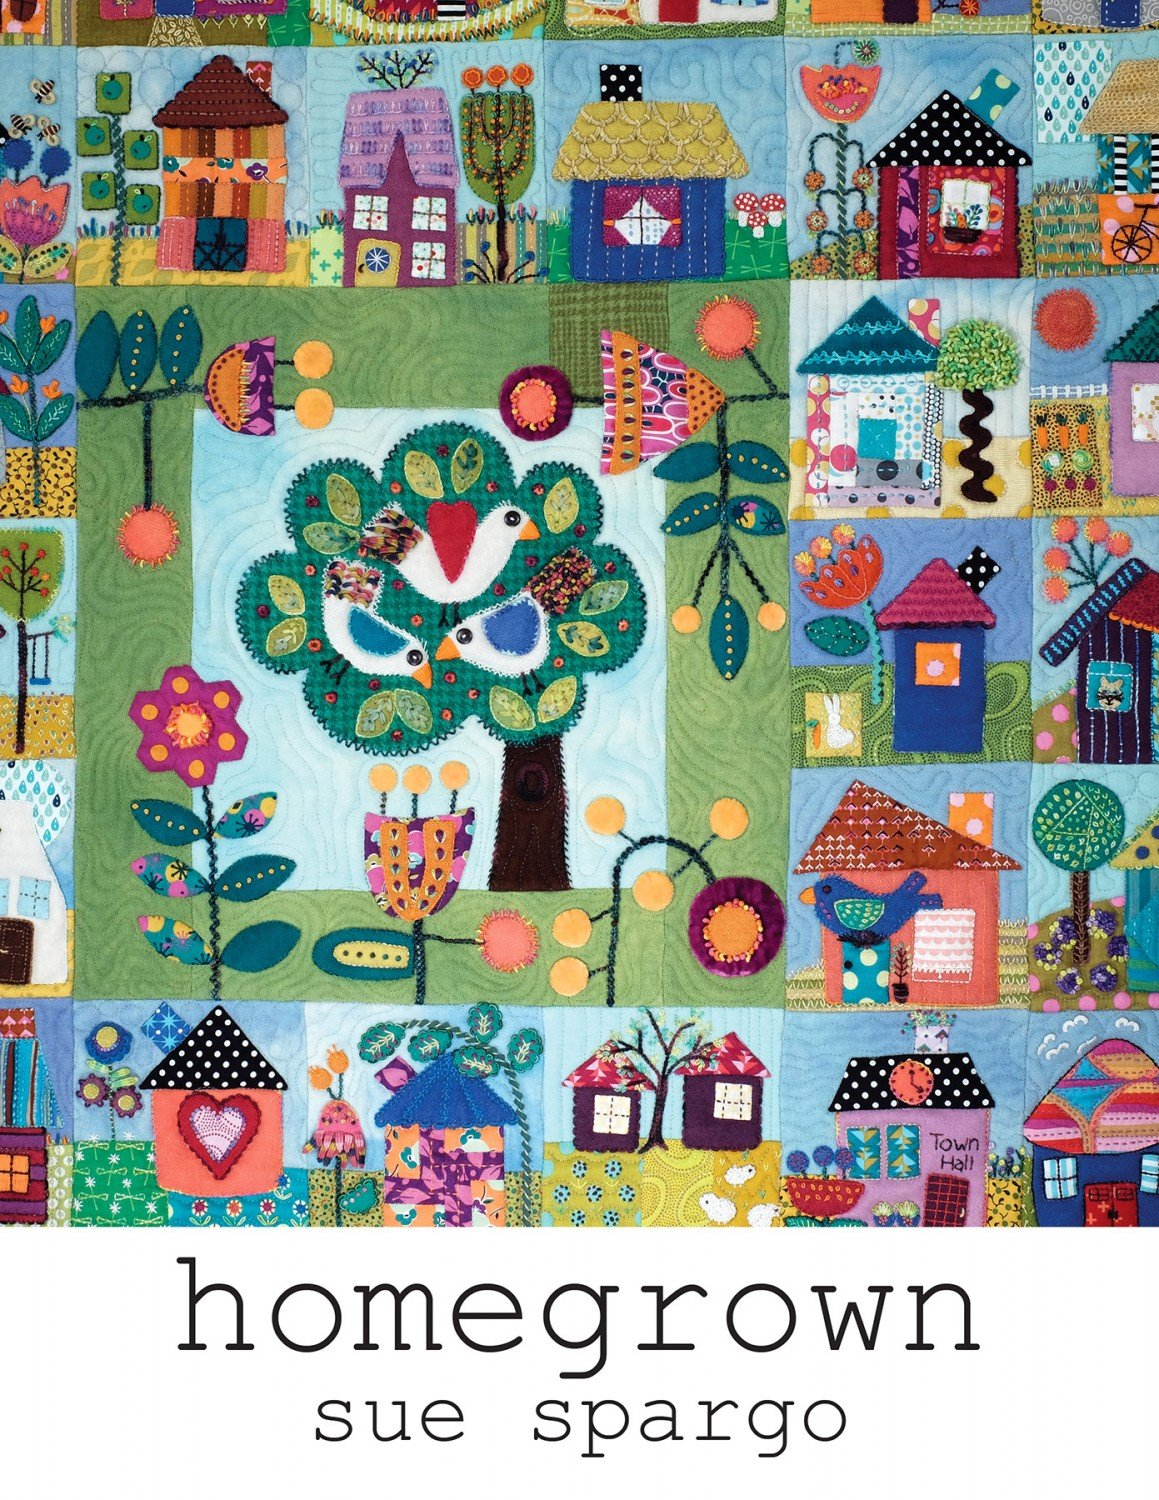 Homegrown Book by Sue Spargo